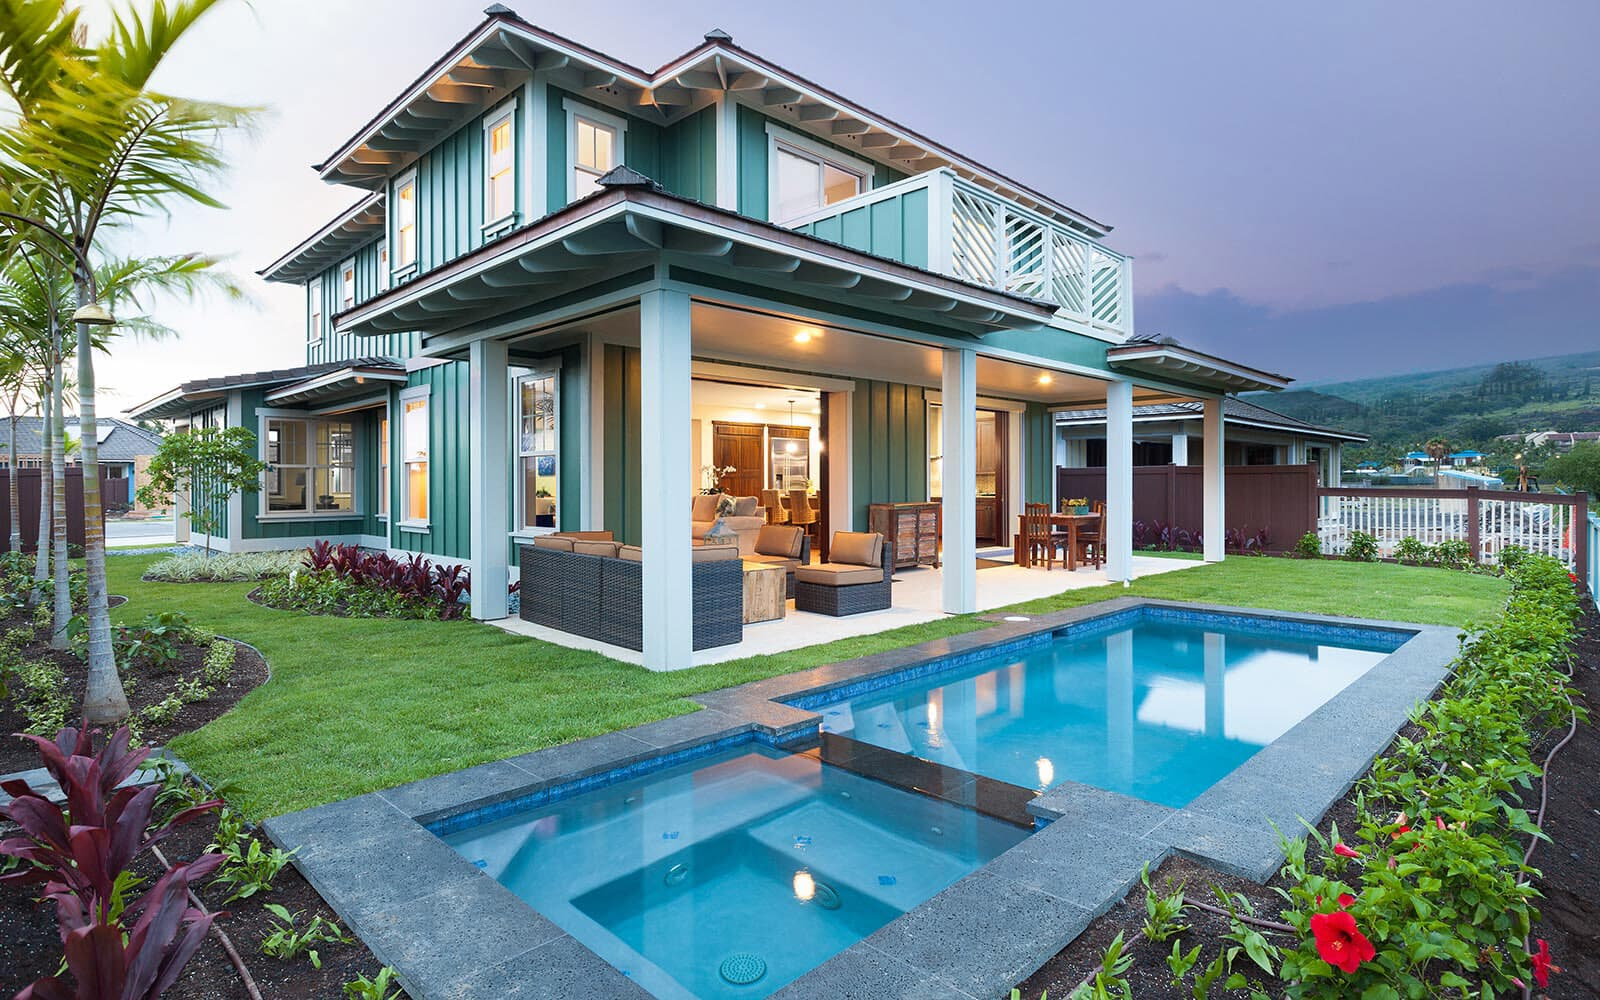 exterior-new-home-plan-4-holua-kai-at-keauhou-big-island-brookfield-residential